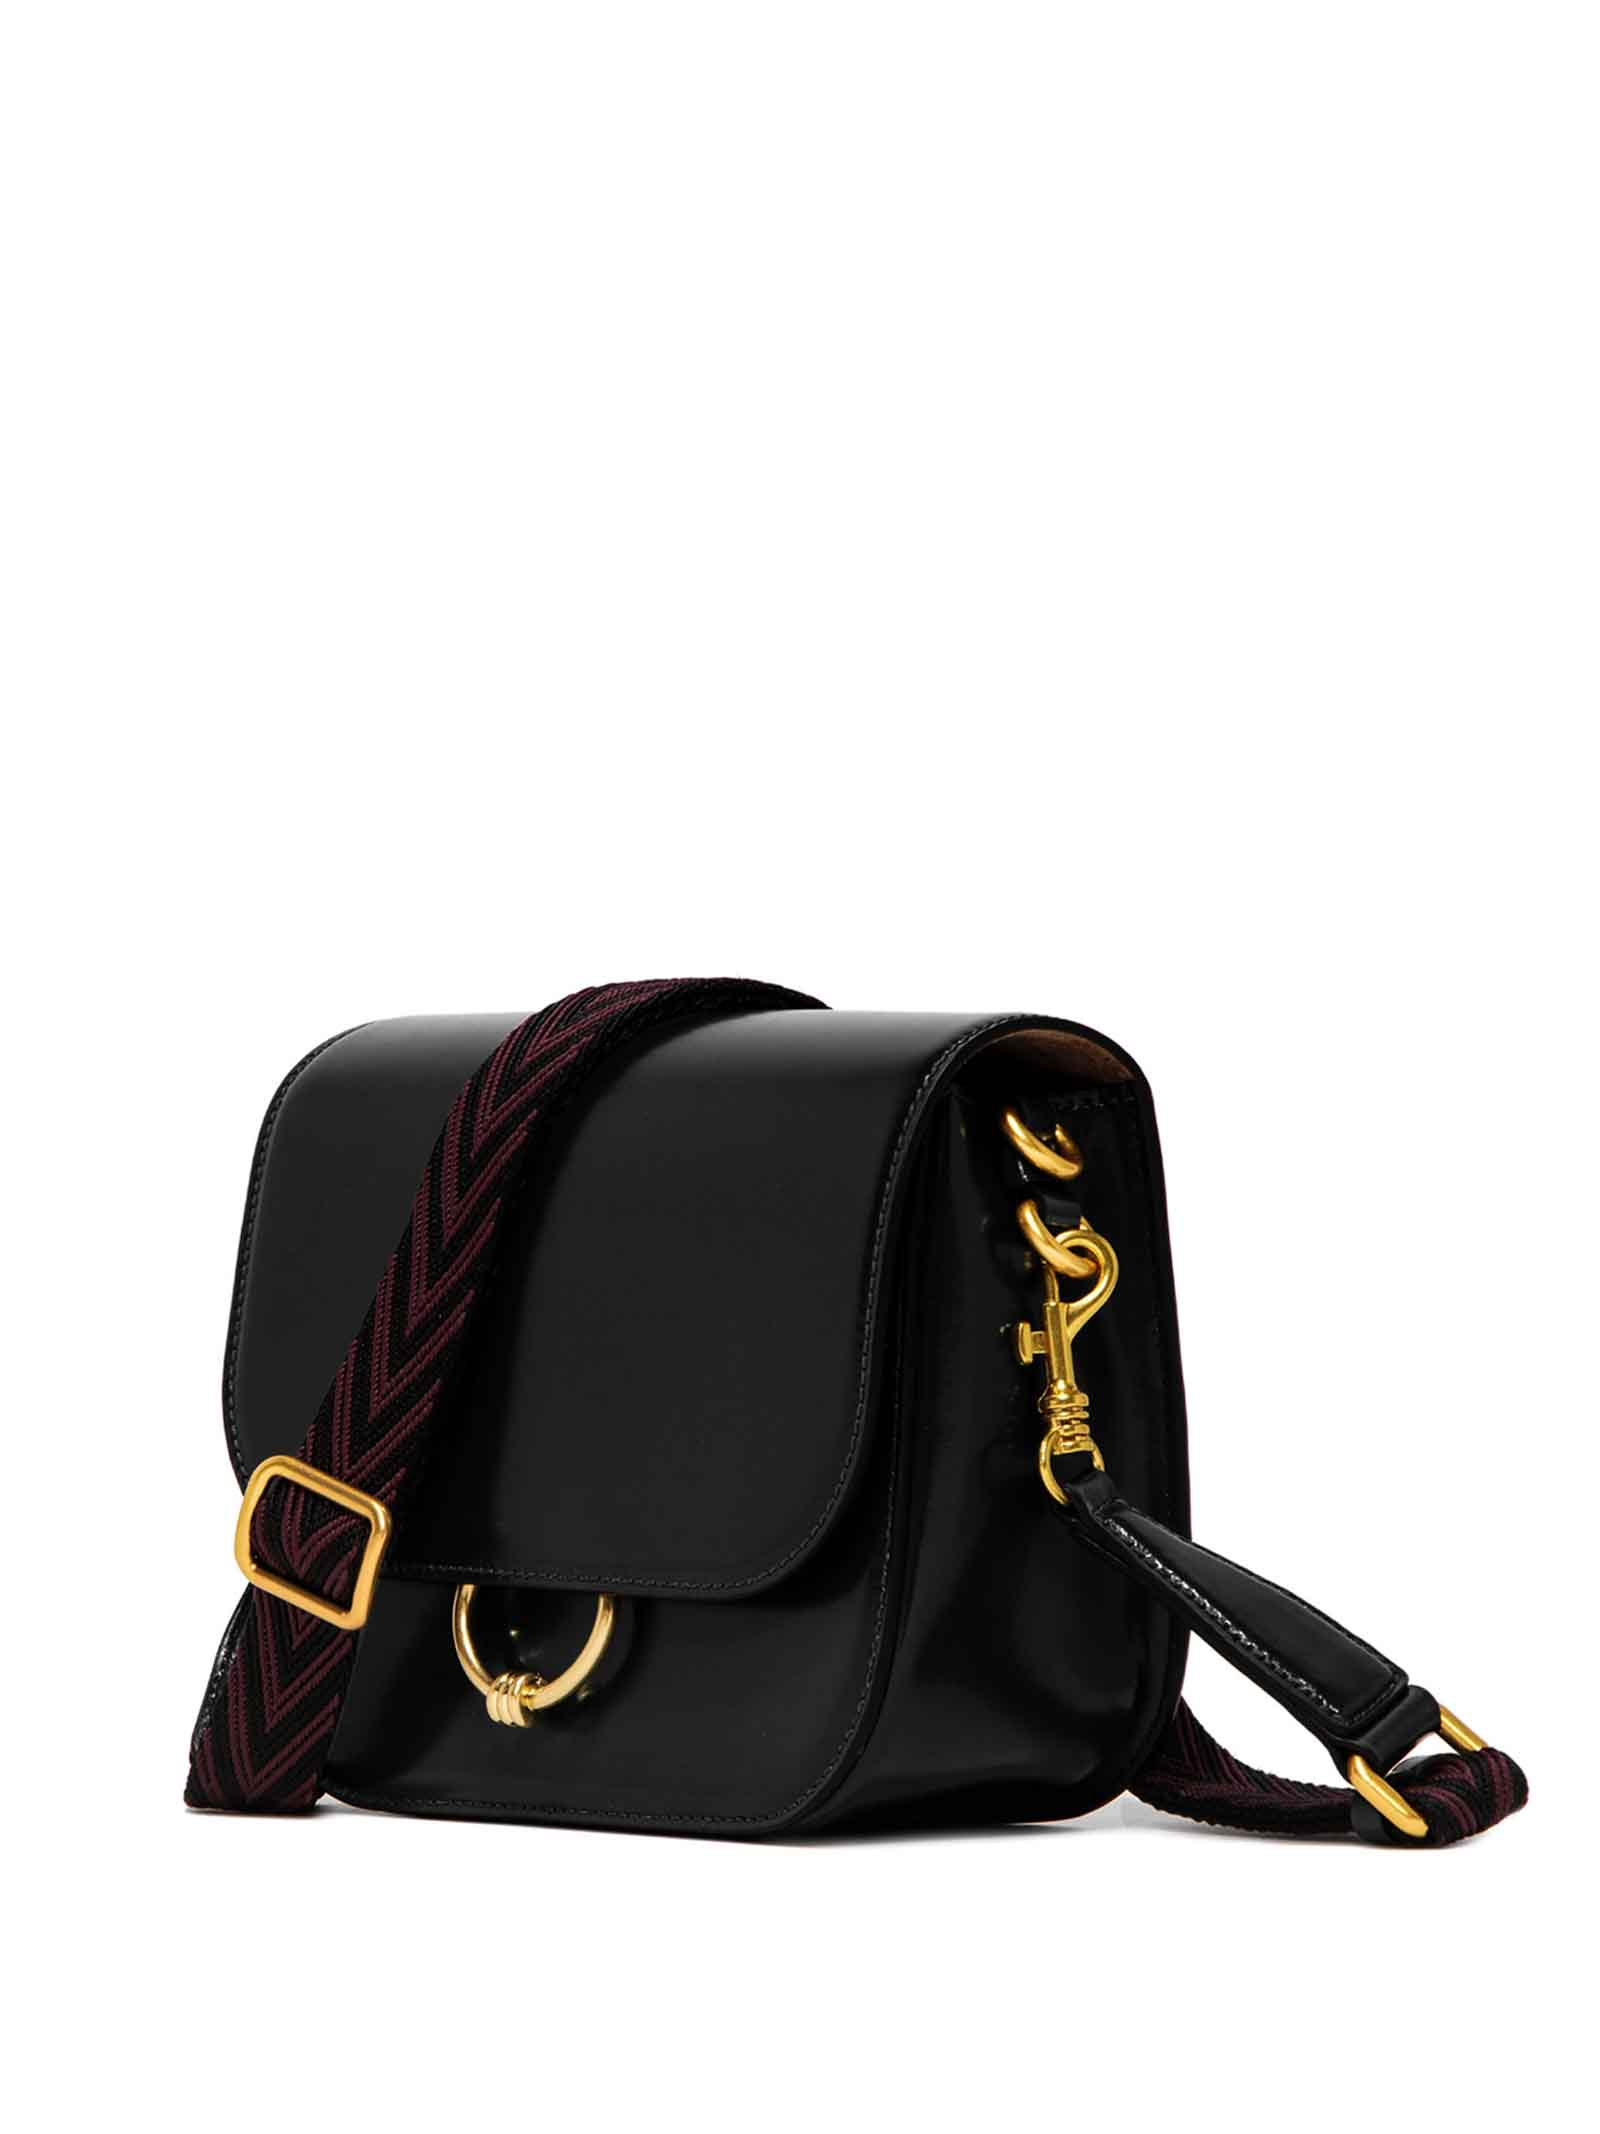 Women's Accessories Shoulder Bag Meg in Black Leather with Magnet Clasp and Detachable Fabric Shoulder Strap Gianni Chiarini   Bags and backpacks   BS8925001